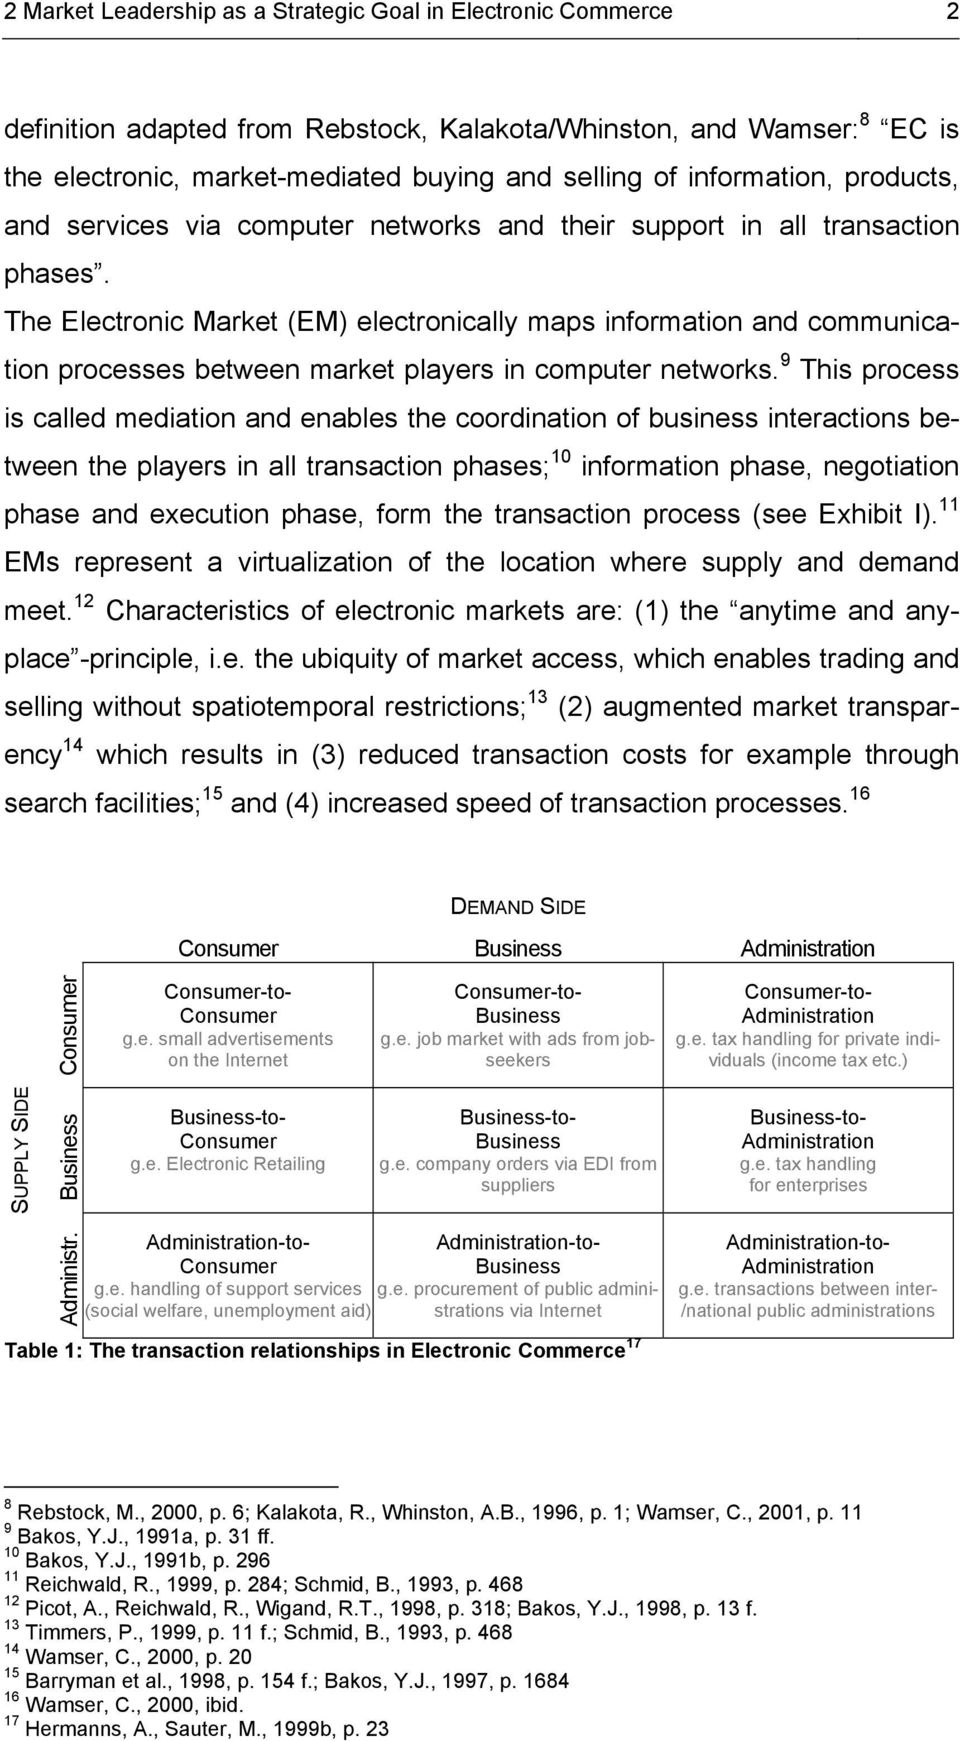 The Electronic Market (EM) electronically maps information and communication processes between market players in computer networks.